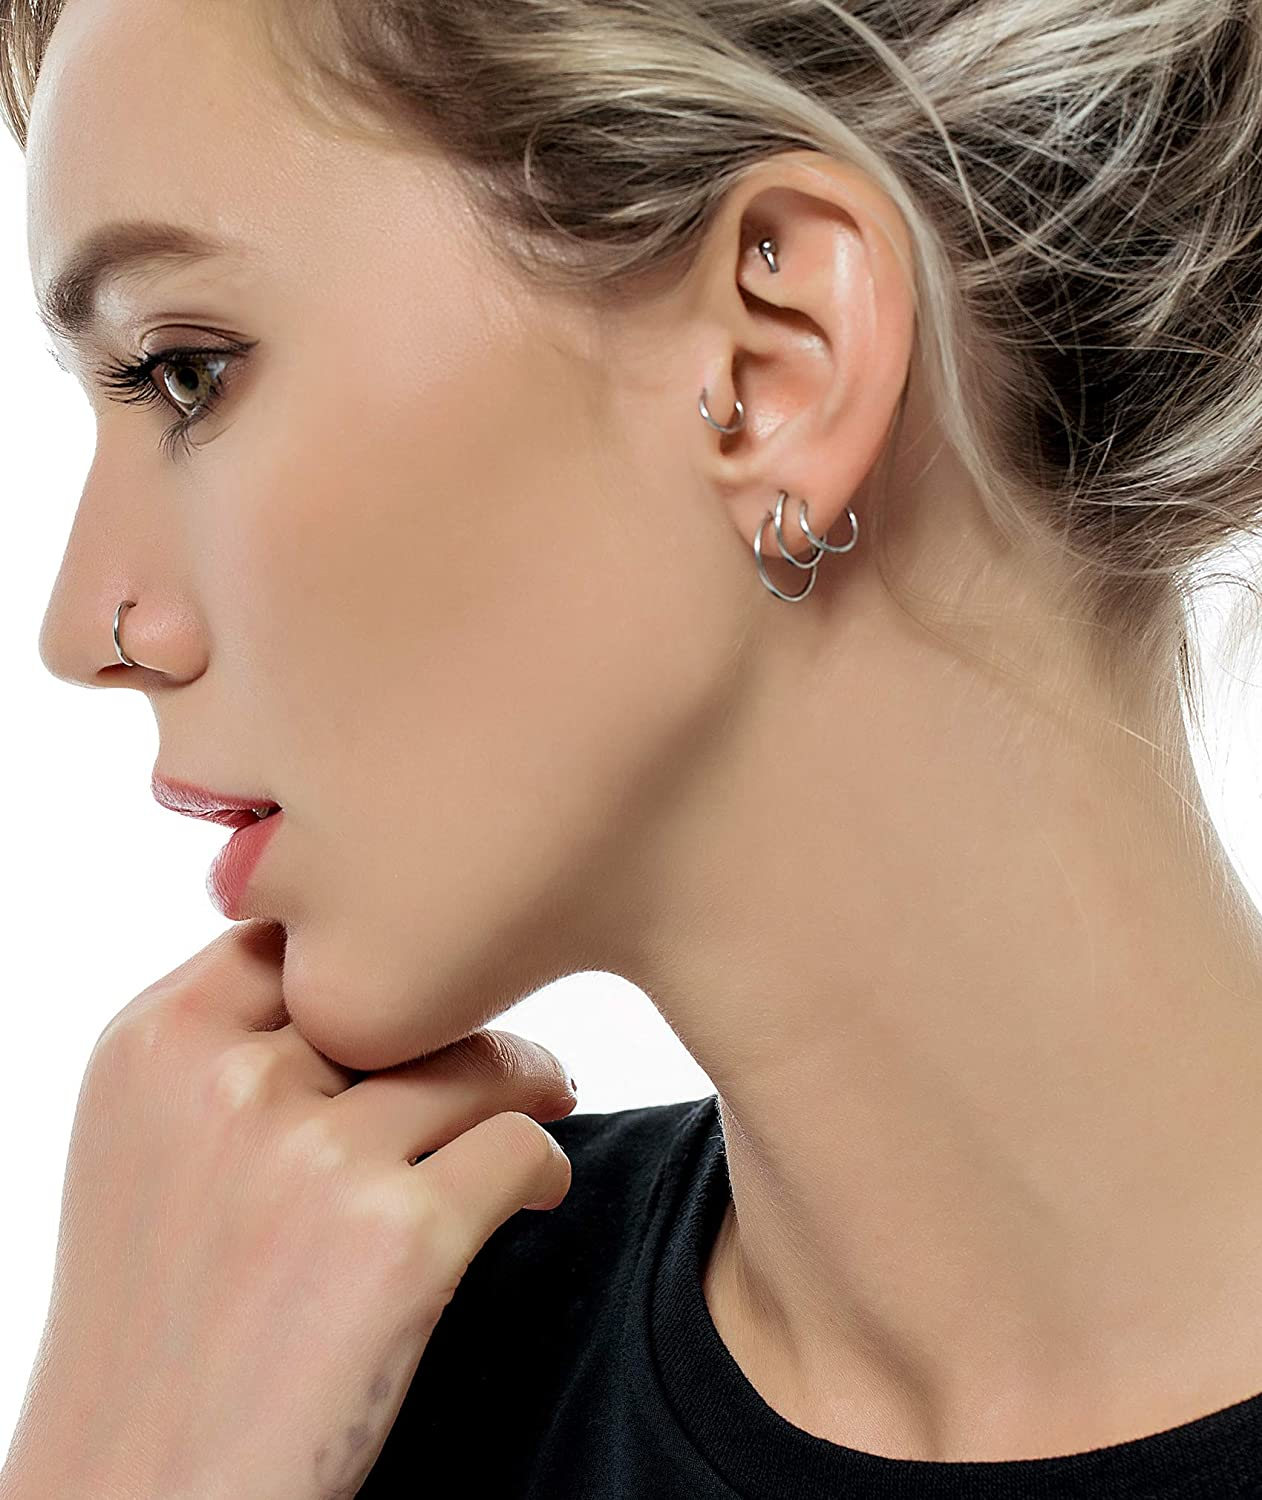 Tornito 6-8Pcs 18G-16G-14G Stainles Steel Septum Clicker Ring Seamless Lip Nose Daith Cartilage Helix Tragus Hoop Ring